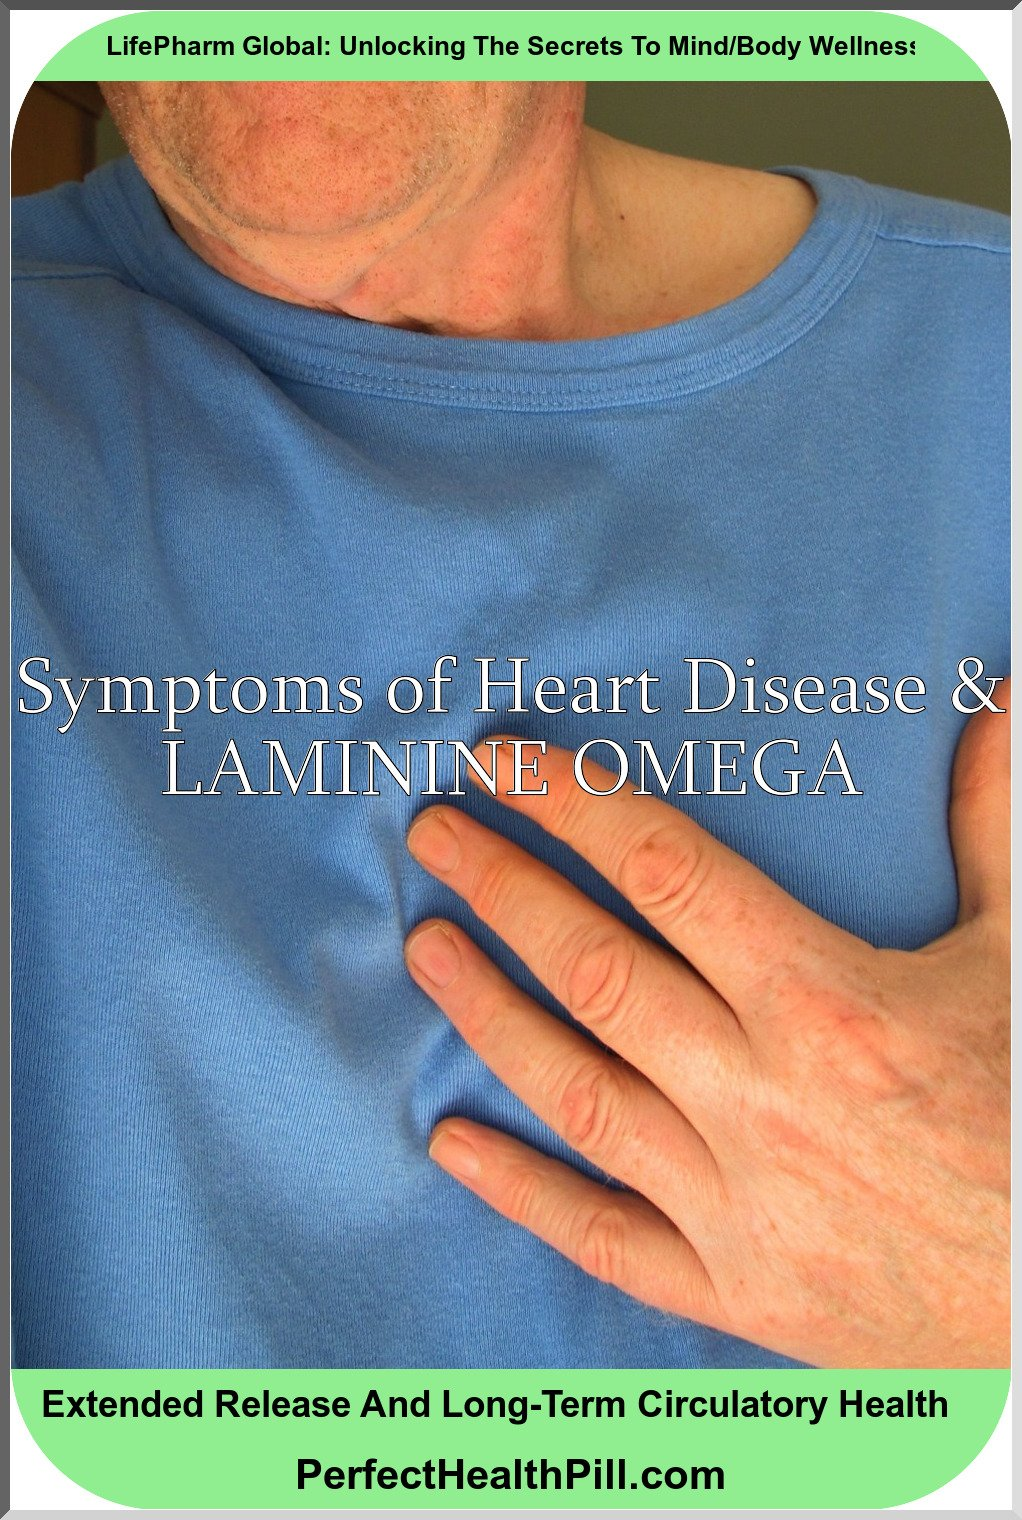 SAVE YOUR HEART WITH LAMININE OMEGA